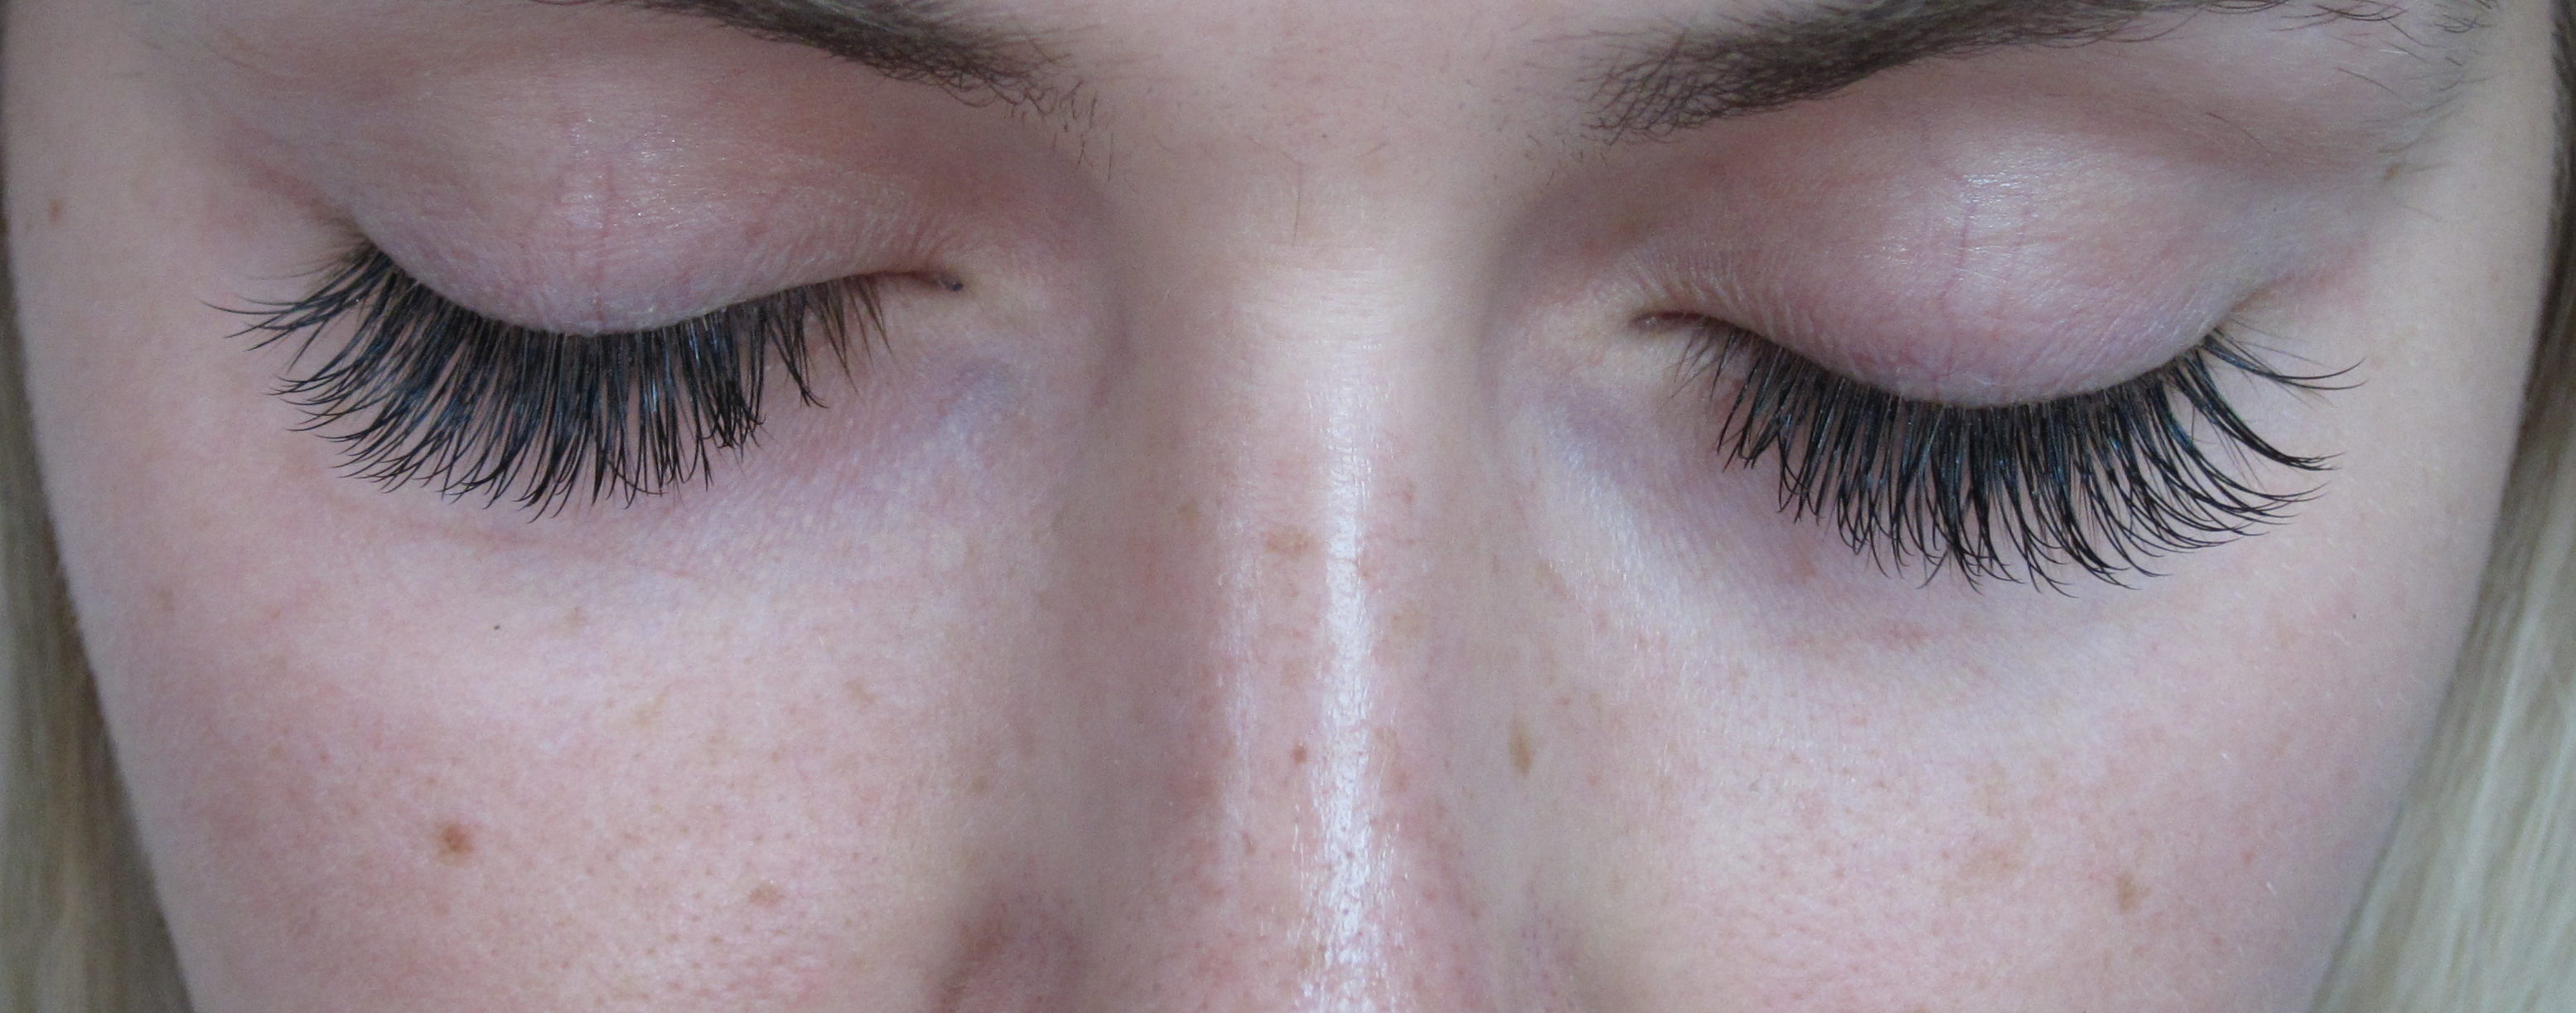 Lash extensions in Lynchburg, VA.